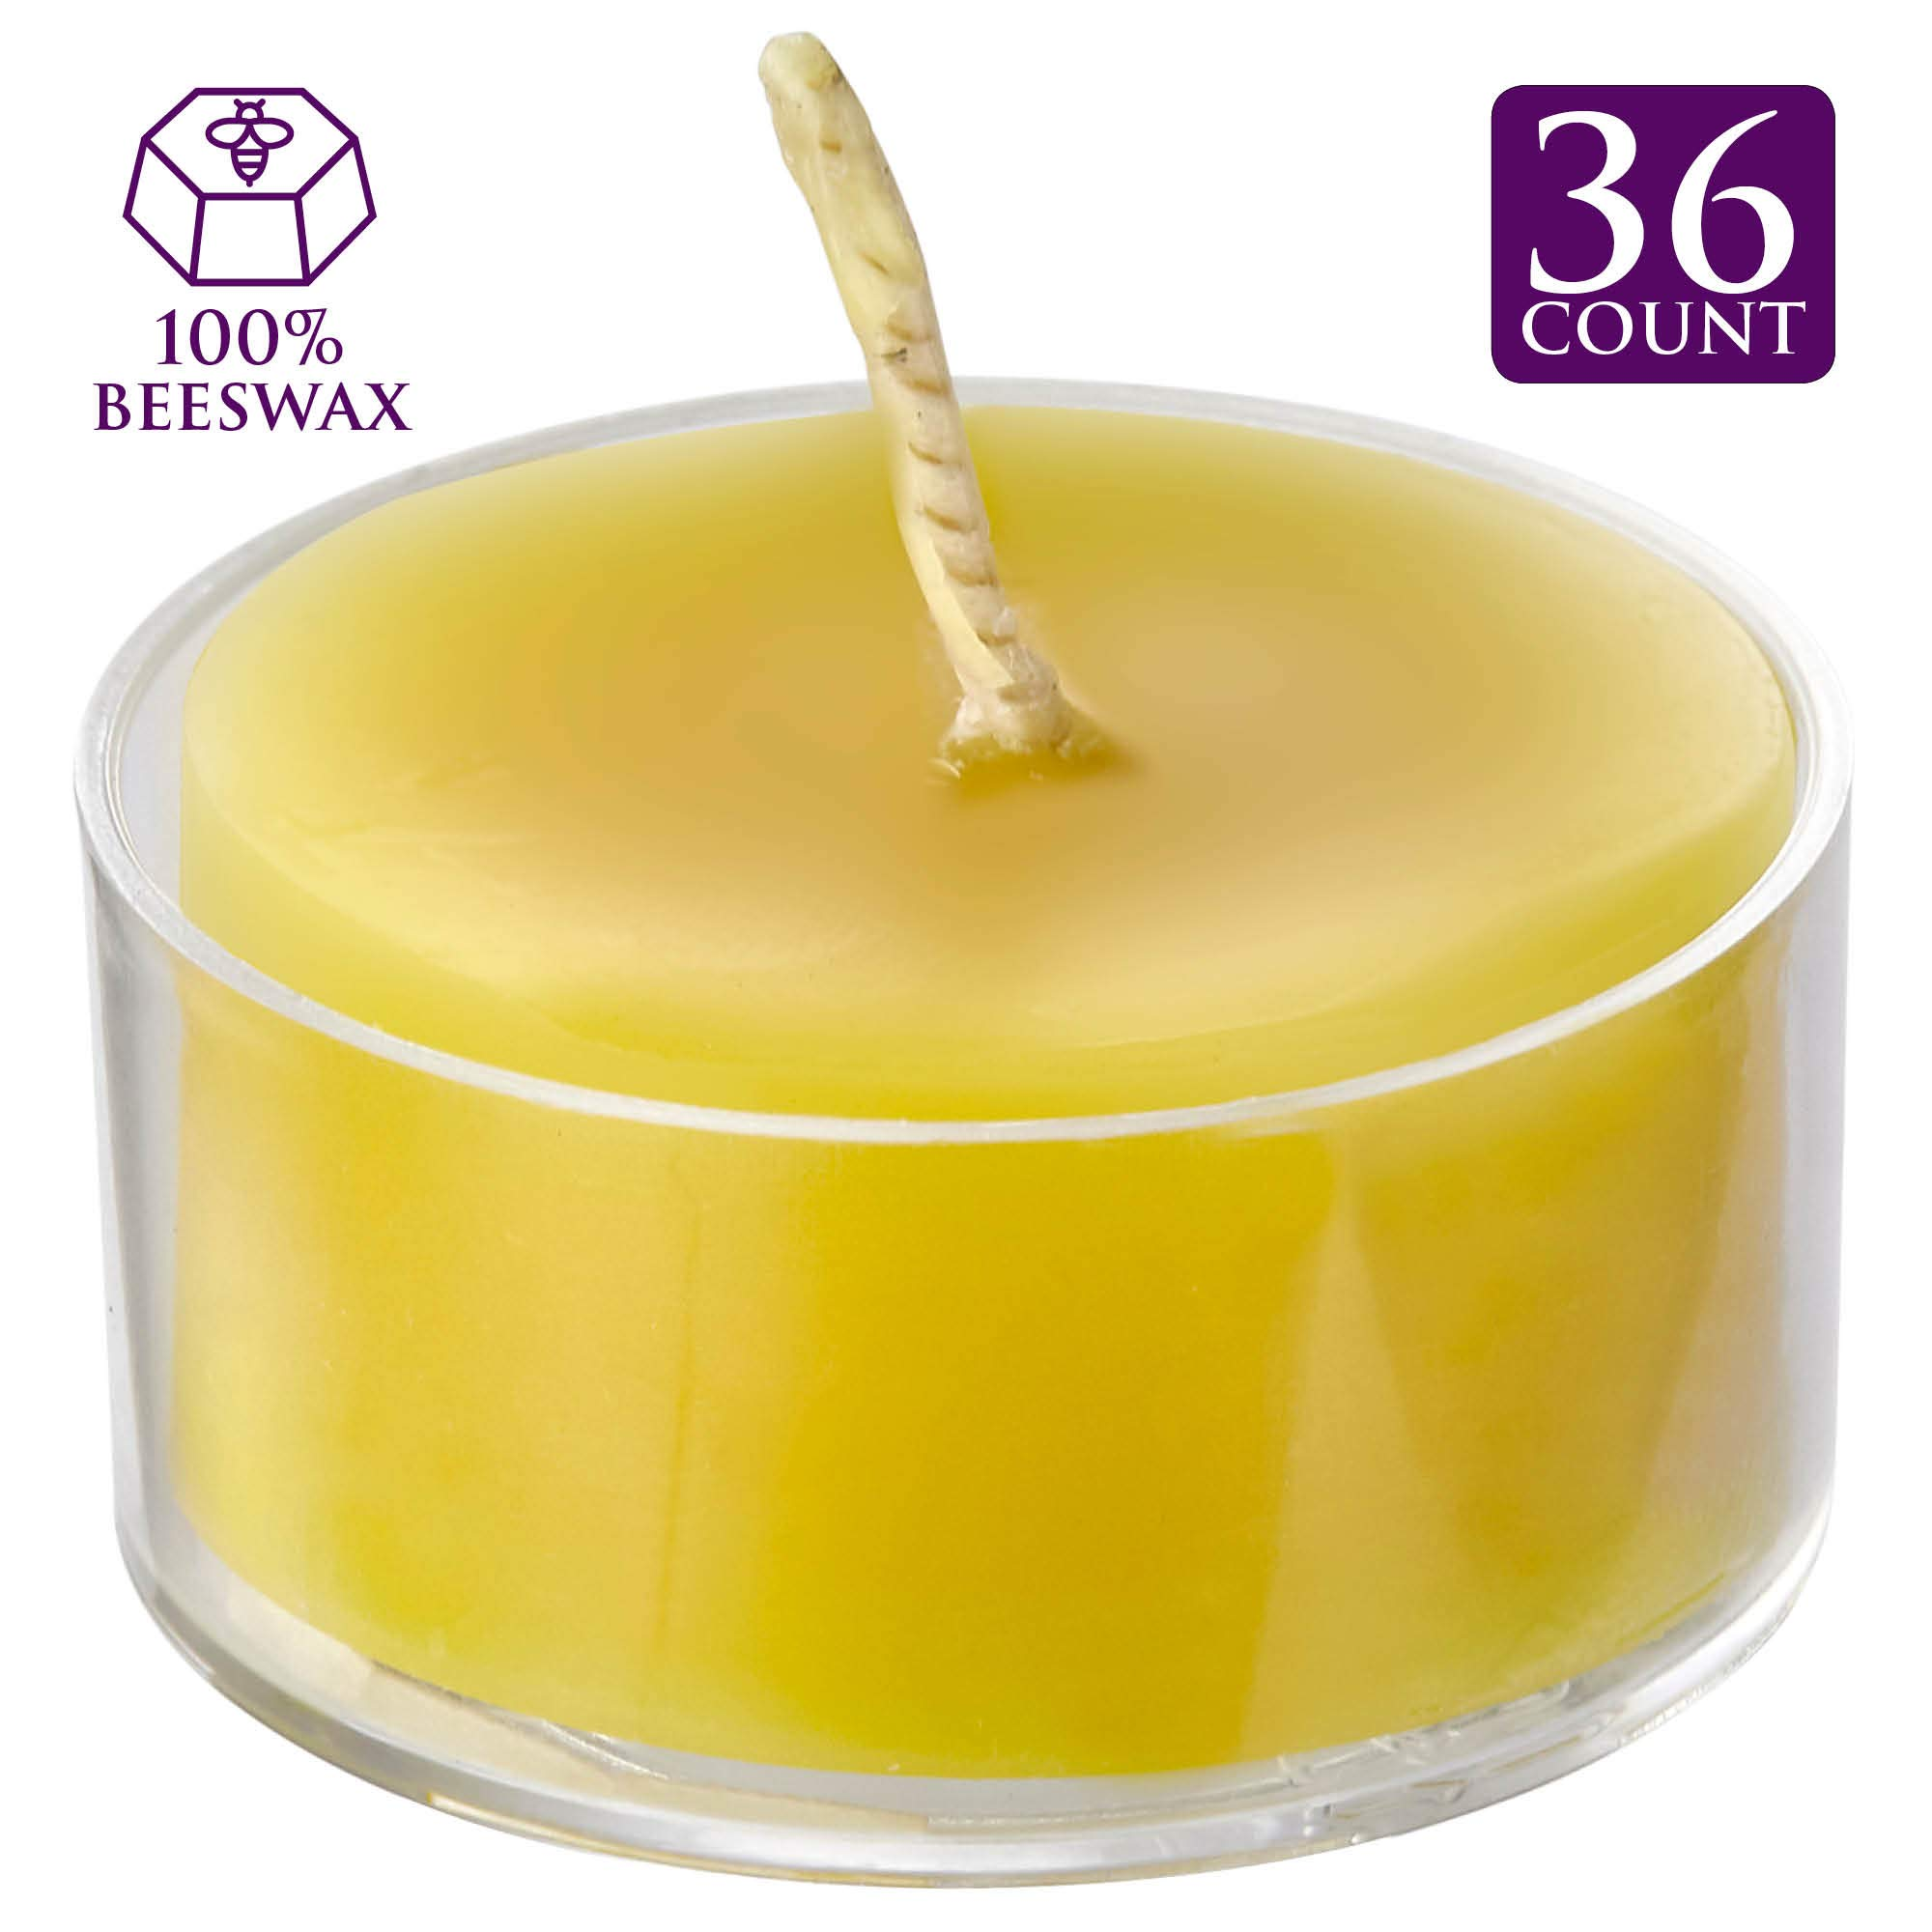 ELITE SELECTION Natural Beeswax Tea Light Candles - Bulk 36 Pack - 1.5'' Votive Candle in Clear Plastic Holder - Multipurpose for Home Décor, Special Events - Lightly Scented Organic Honey by ELITE SELECTION